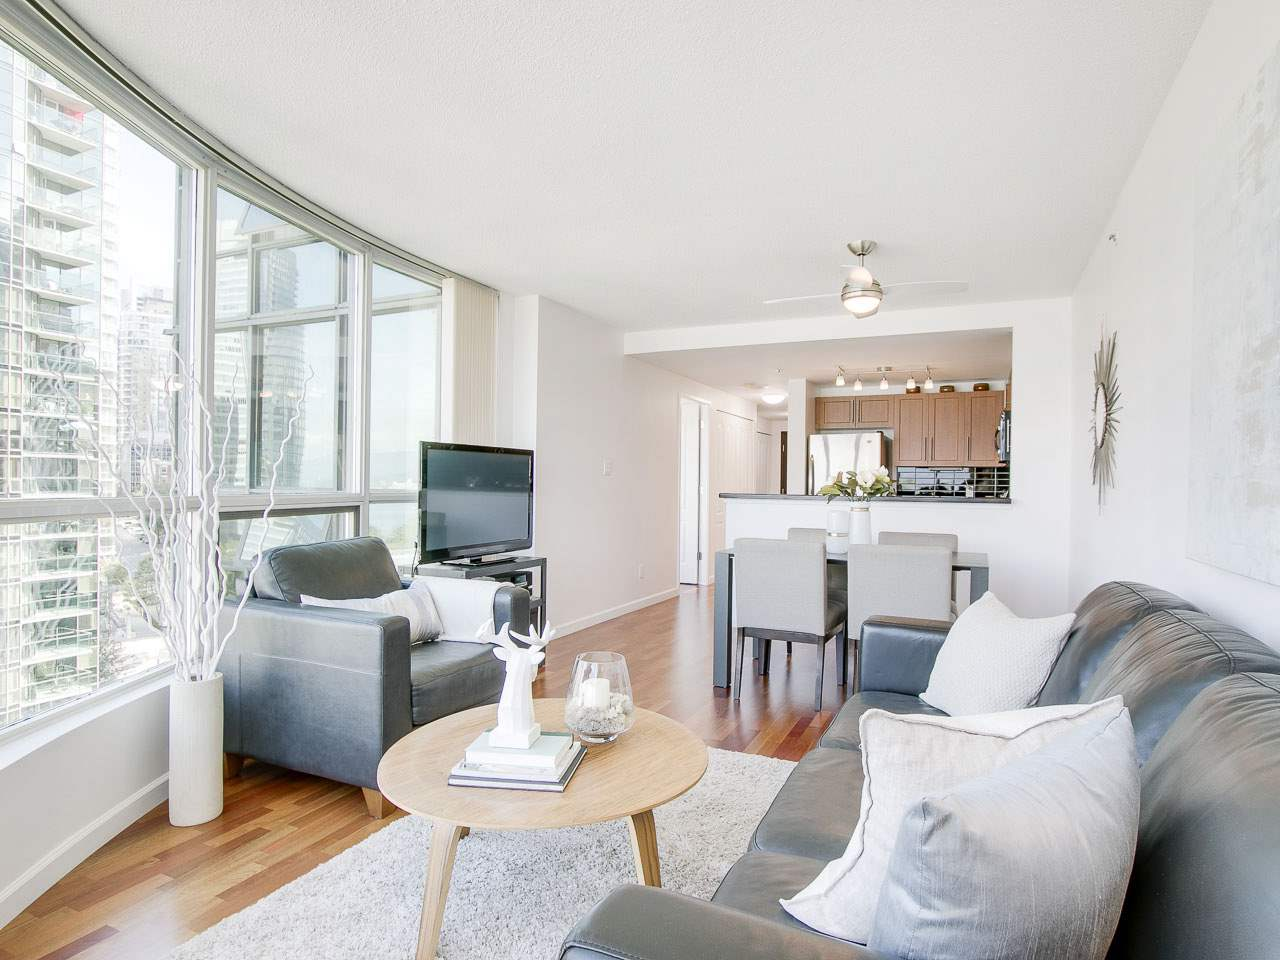 "Photo 7: 902 588 BROUGHTON Street in Vancouver: Coal Harbour Condo for sale in ""HARBOURSIDE PARK"" (Vancouver West)  : MLS® # R2106810"